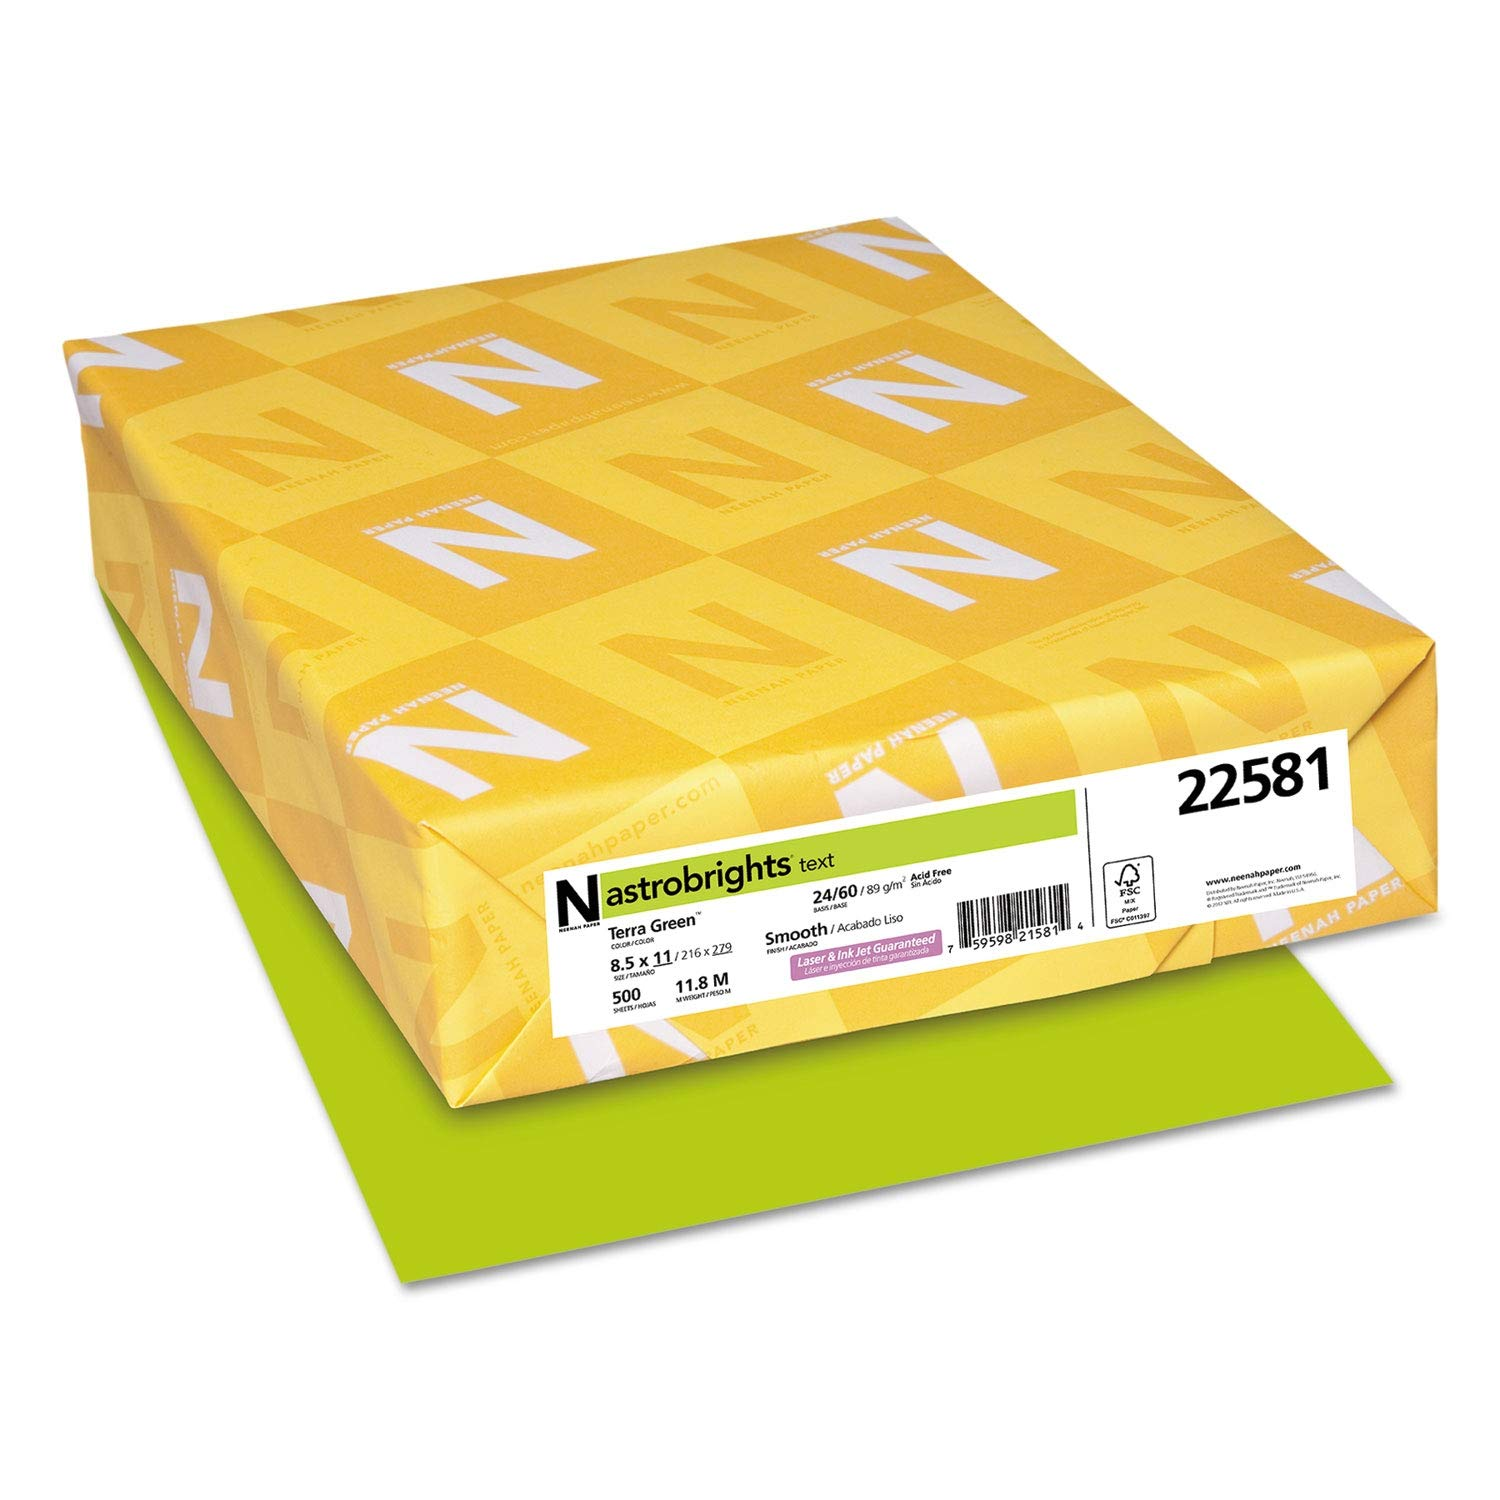 Astrobrights Color Paper, 24lb, 8 1/2 x 11, Terra Green, 500 Sheets - 22581 (Pack of 2)